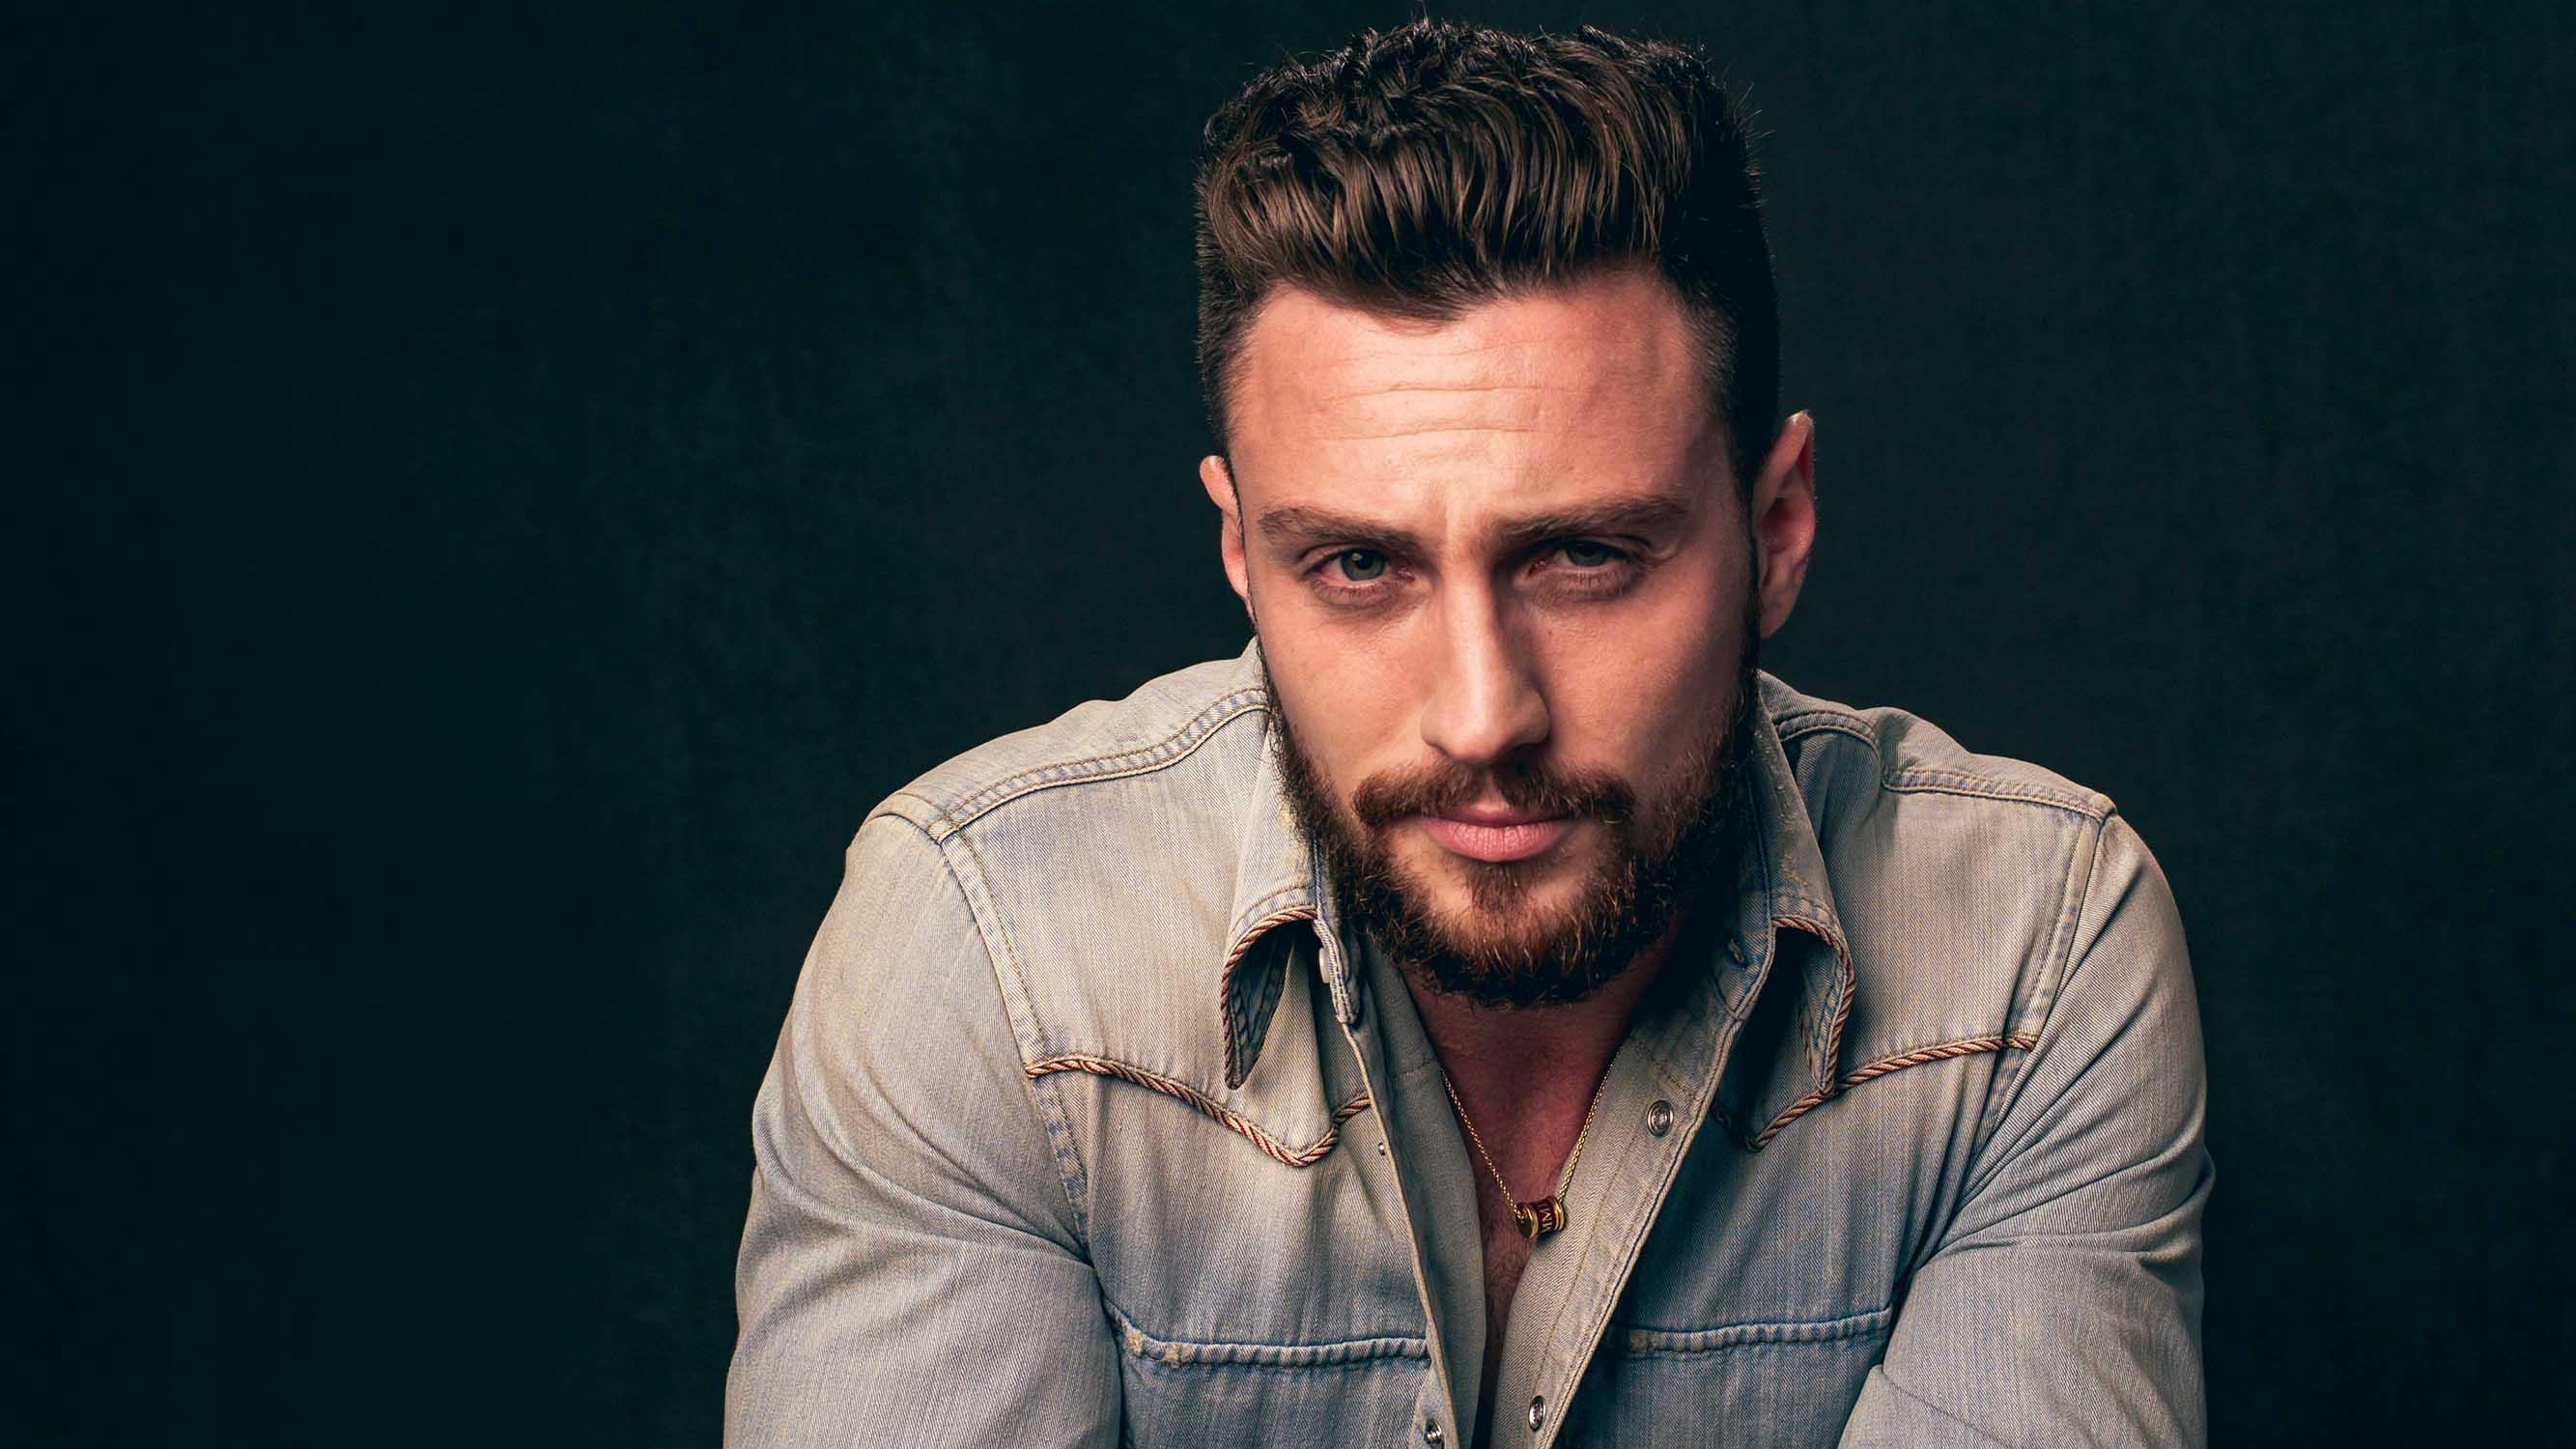 Aaron Taylor Johnson Wallpapers High Quality Download 2667x1500